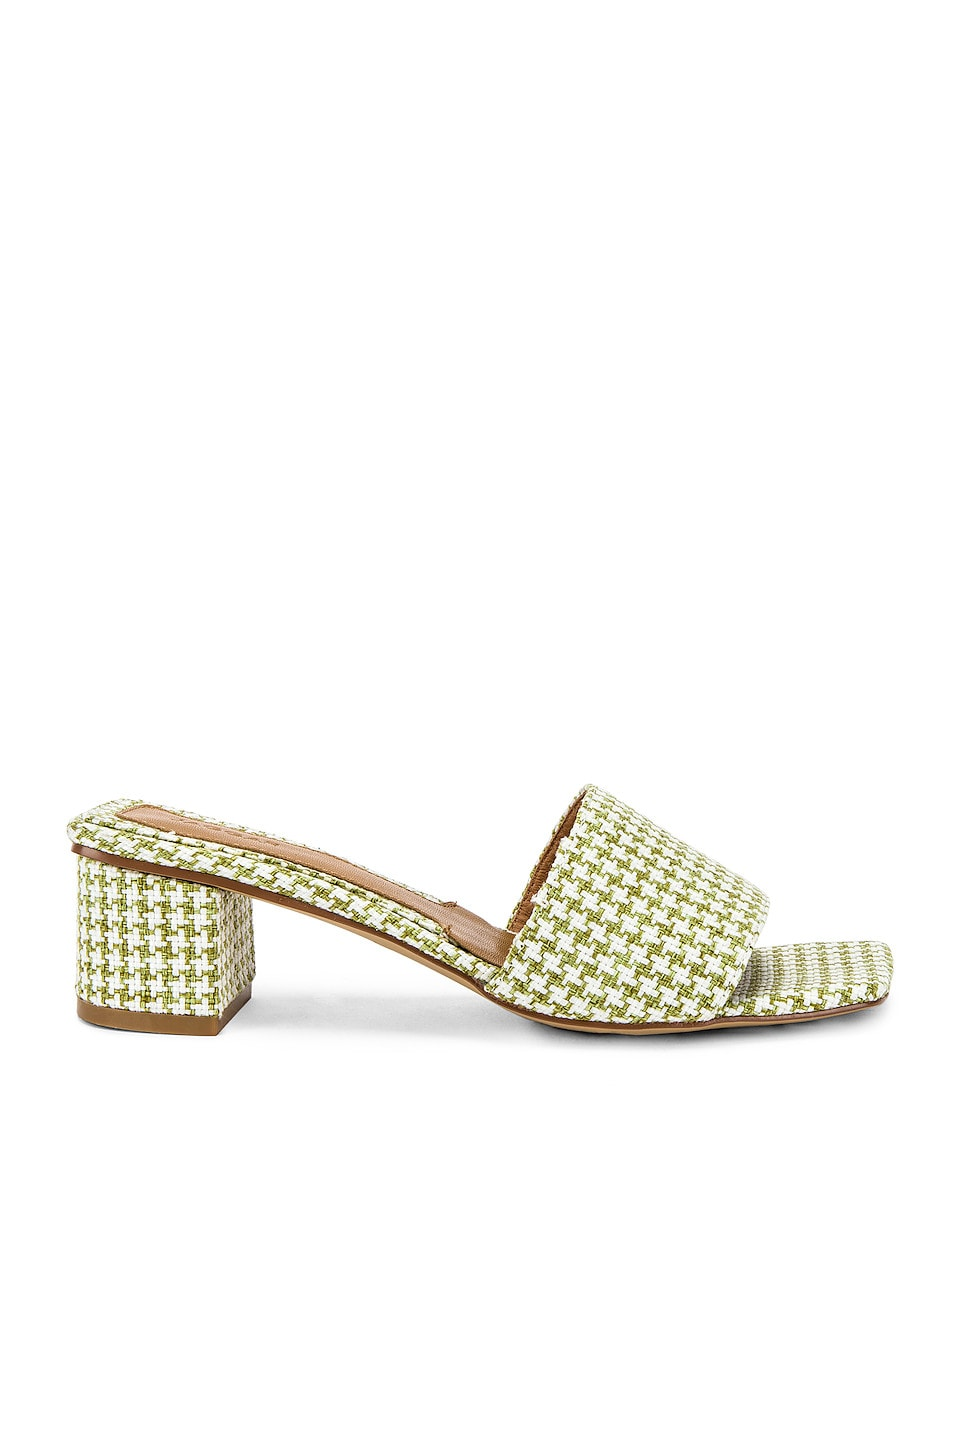 JAGGAR Meadow Houndstooth Sandal in Sage